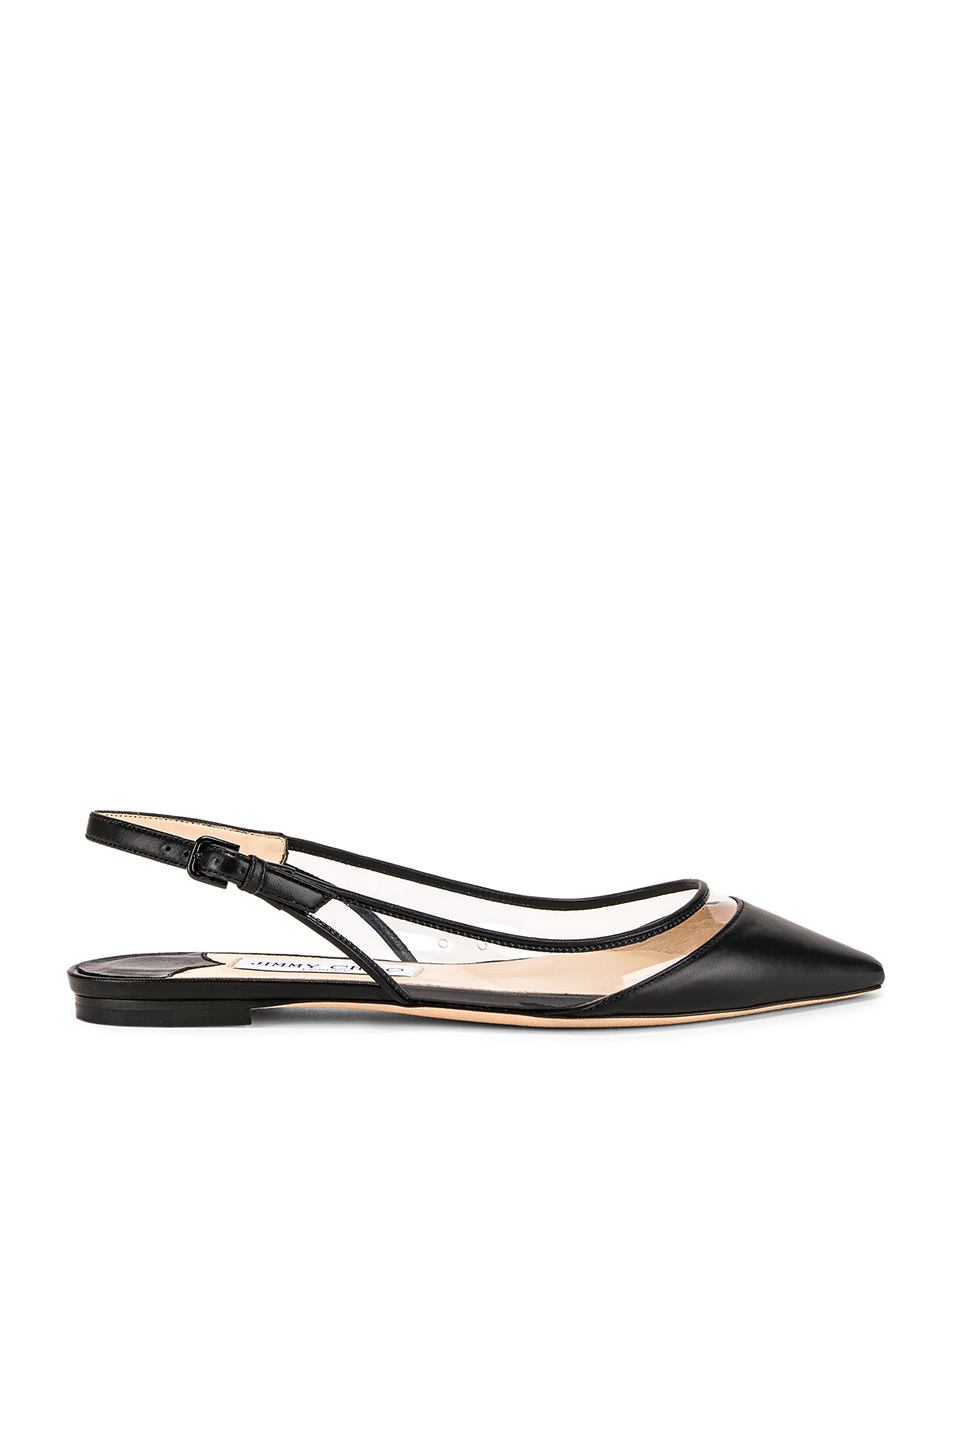 a915a8f3a4b Buy Original Jimmy Choo Leather Erin Flat at Indonesia